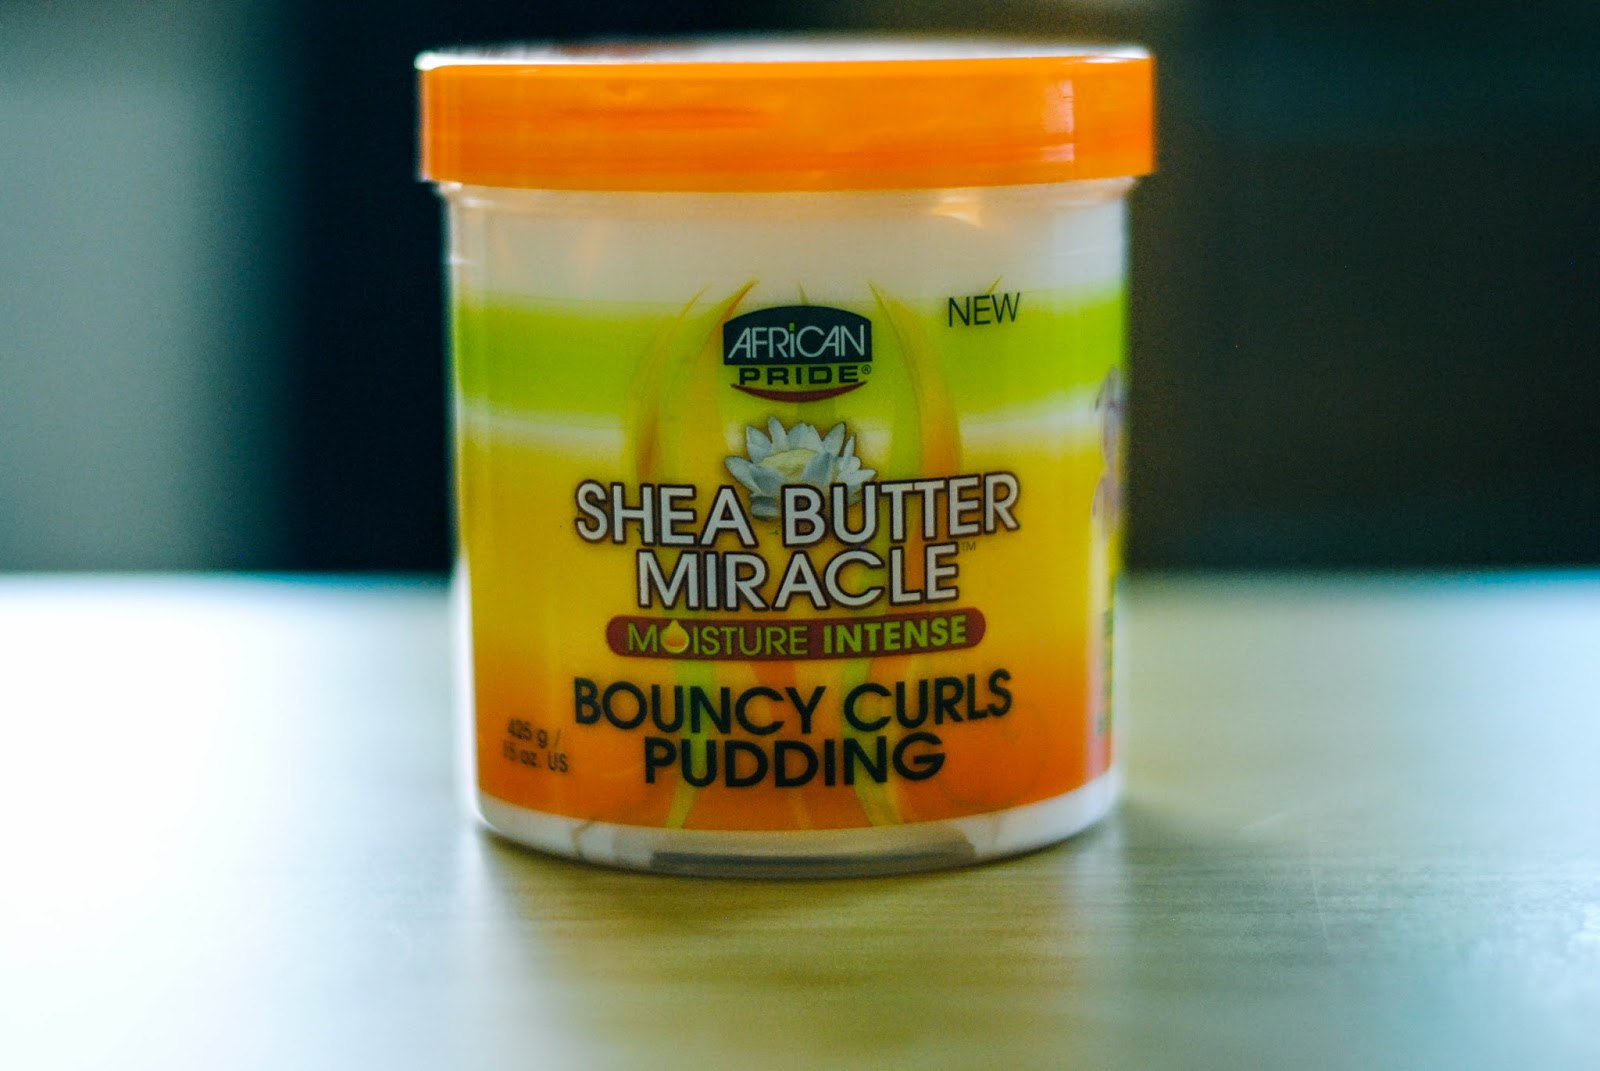 Shea Moisture Miracle Bouncy Curls Pudding